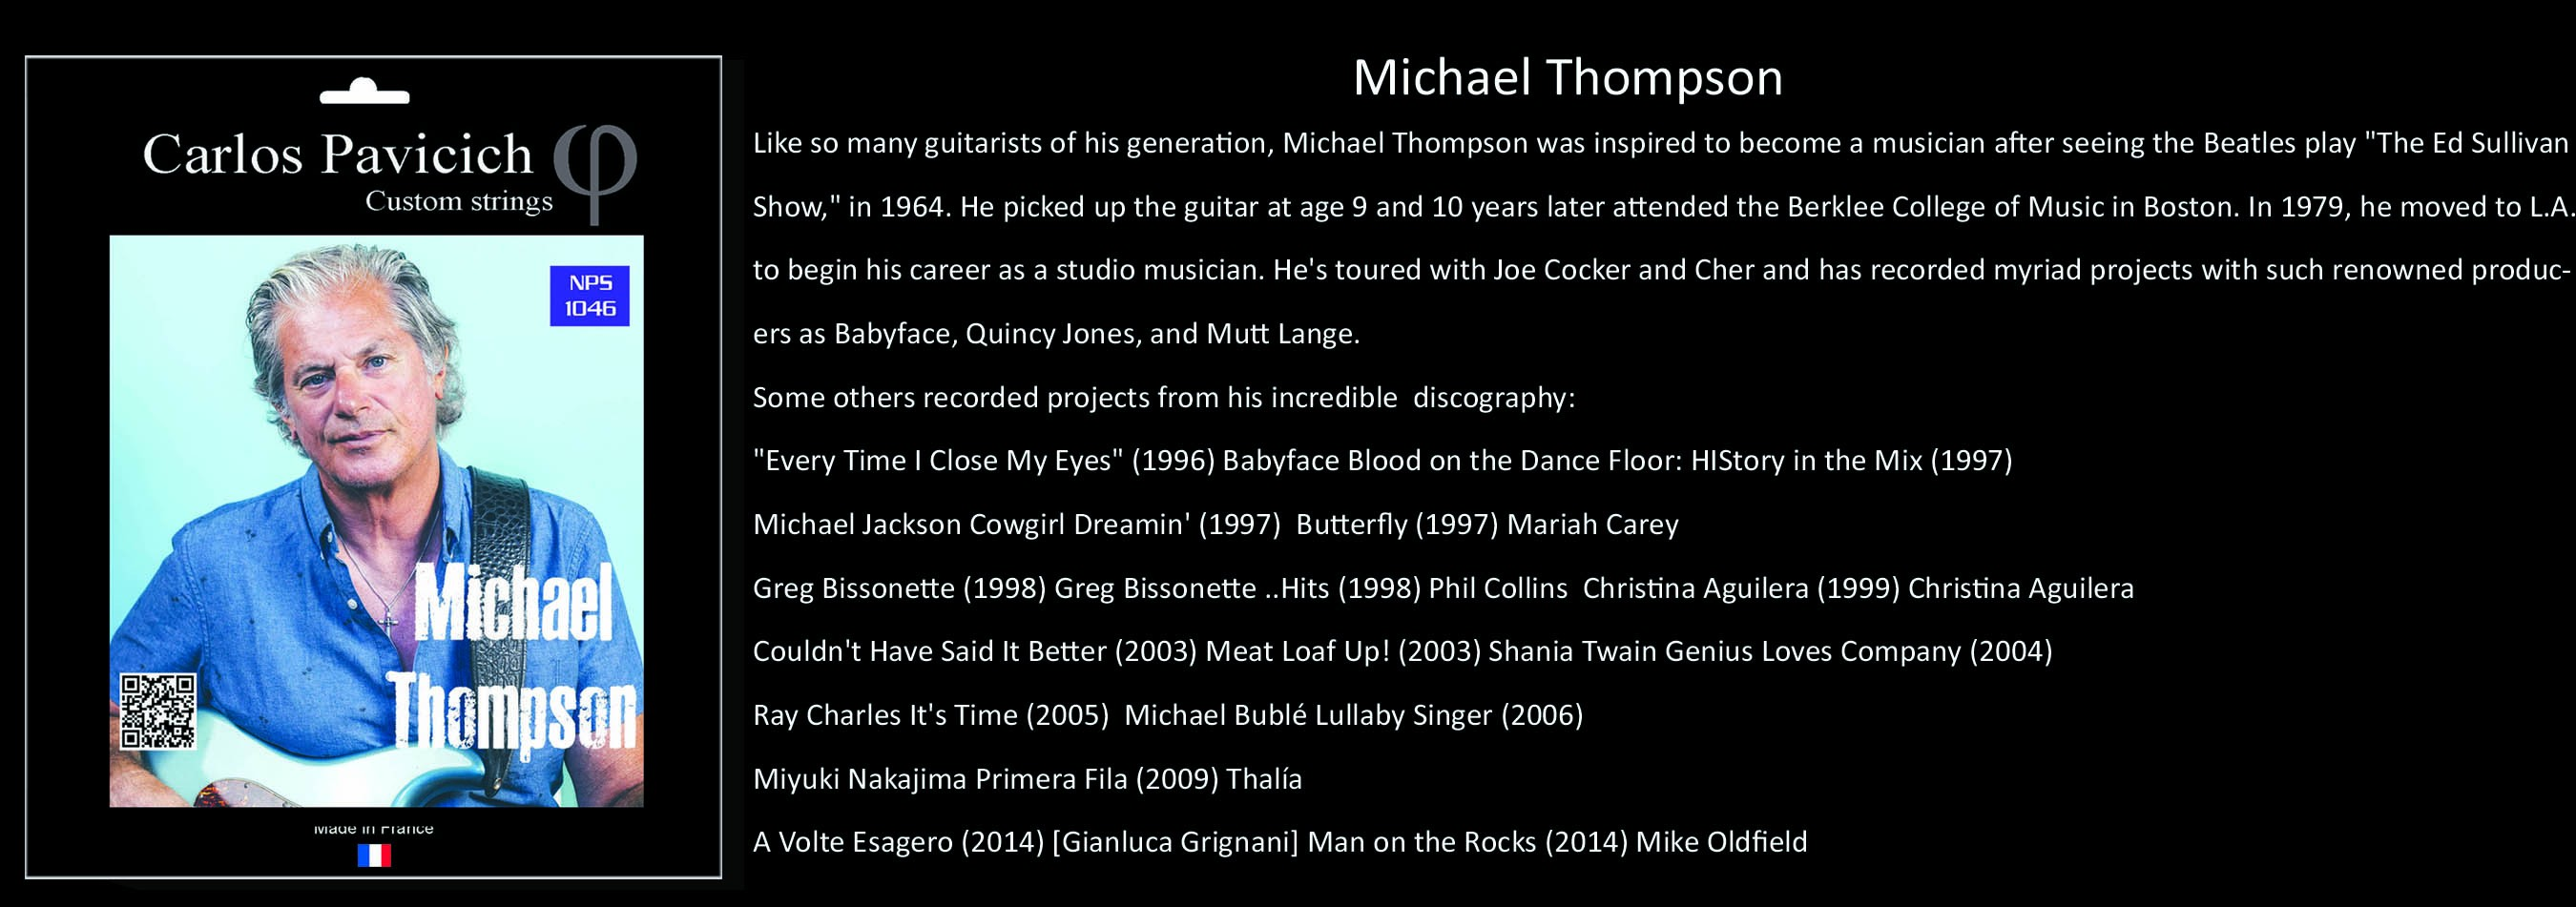 Michael Thompson